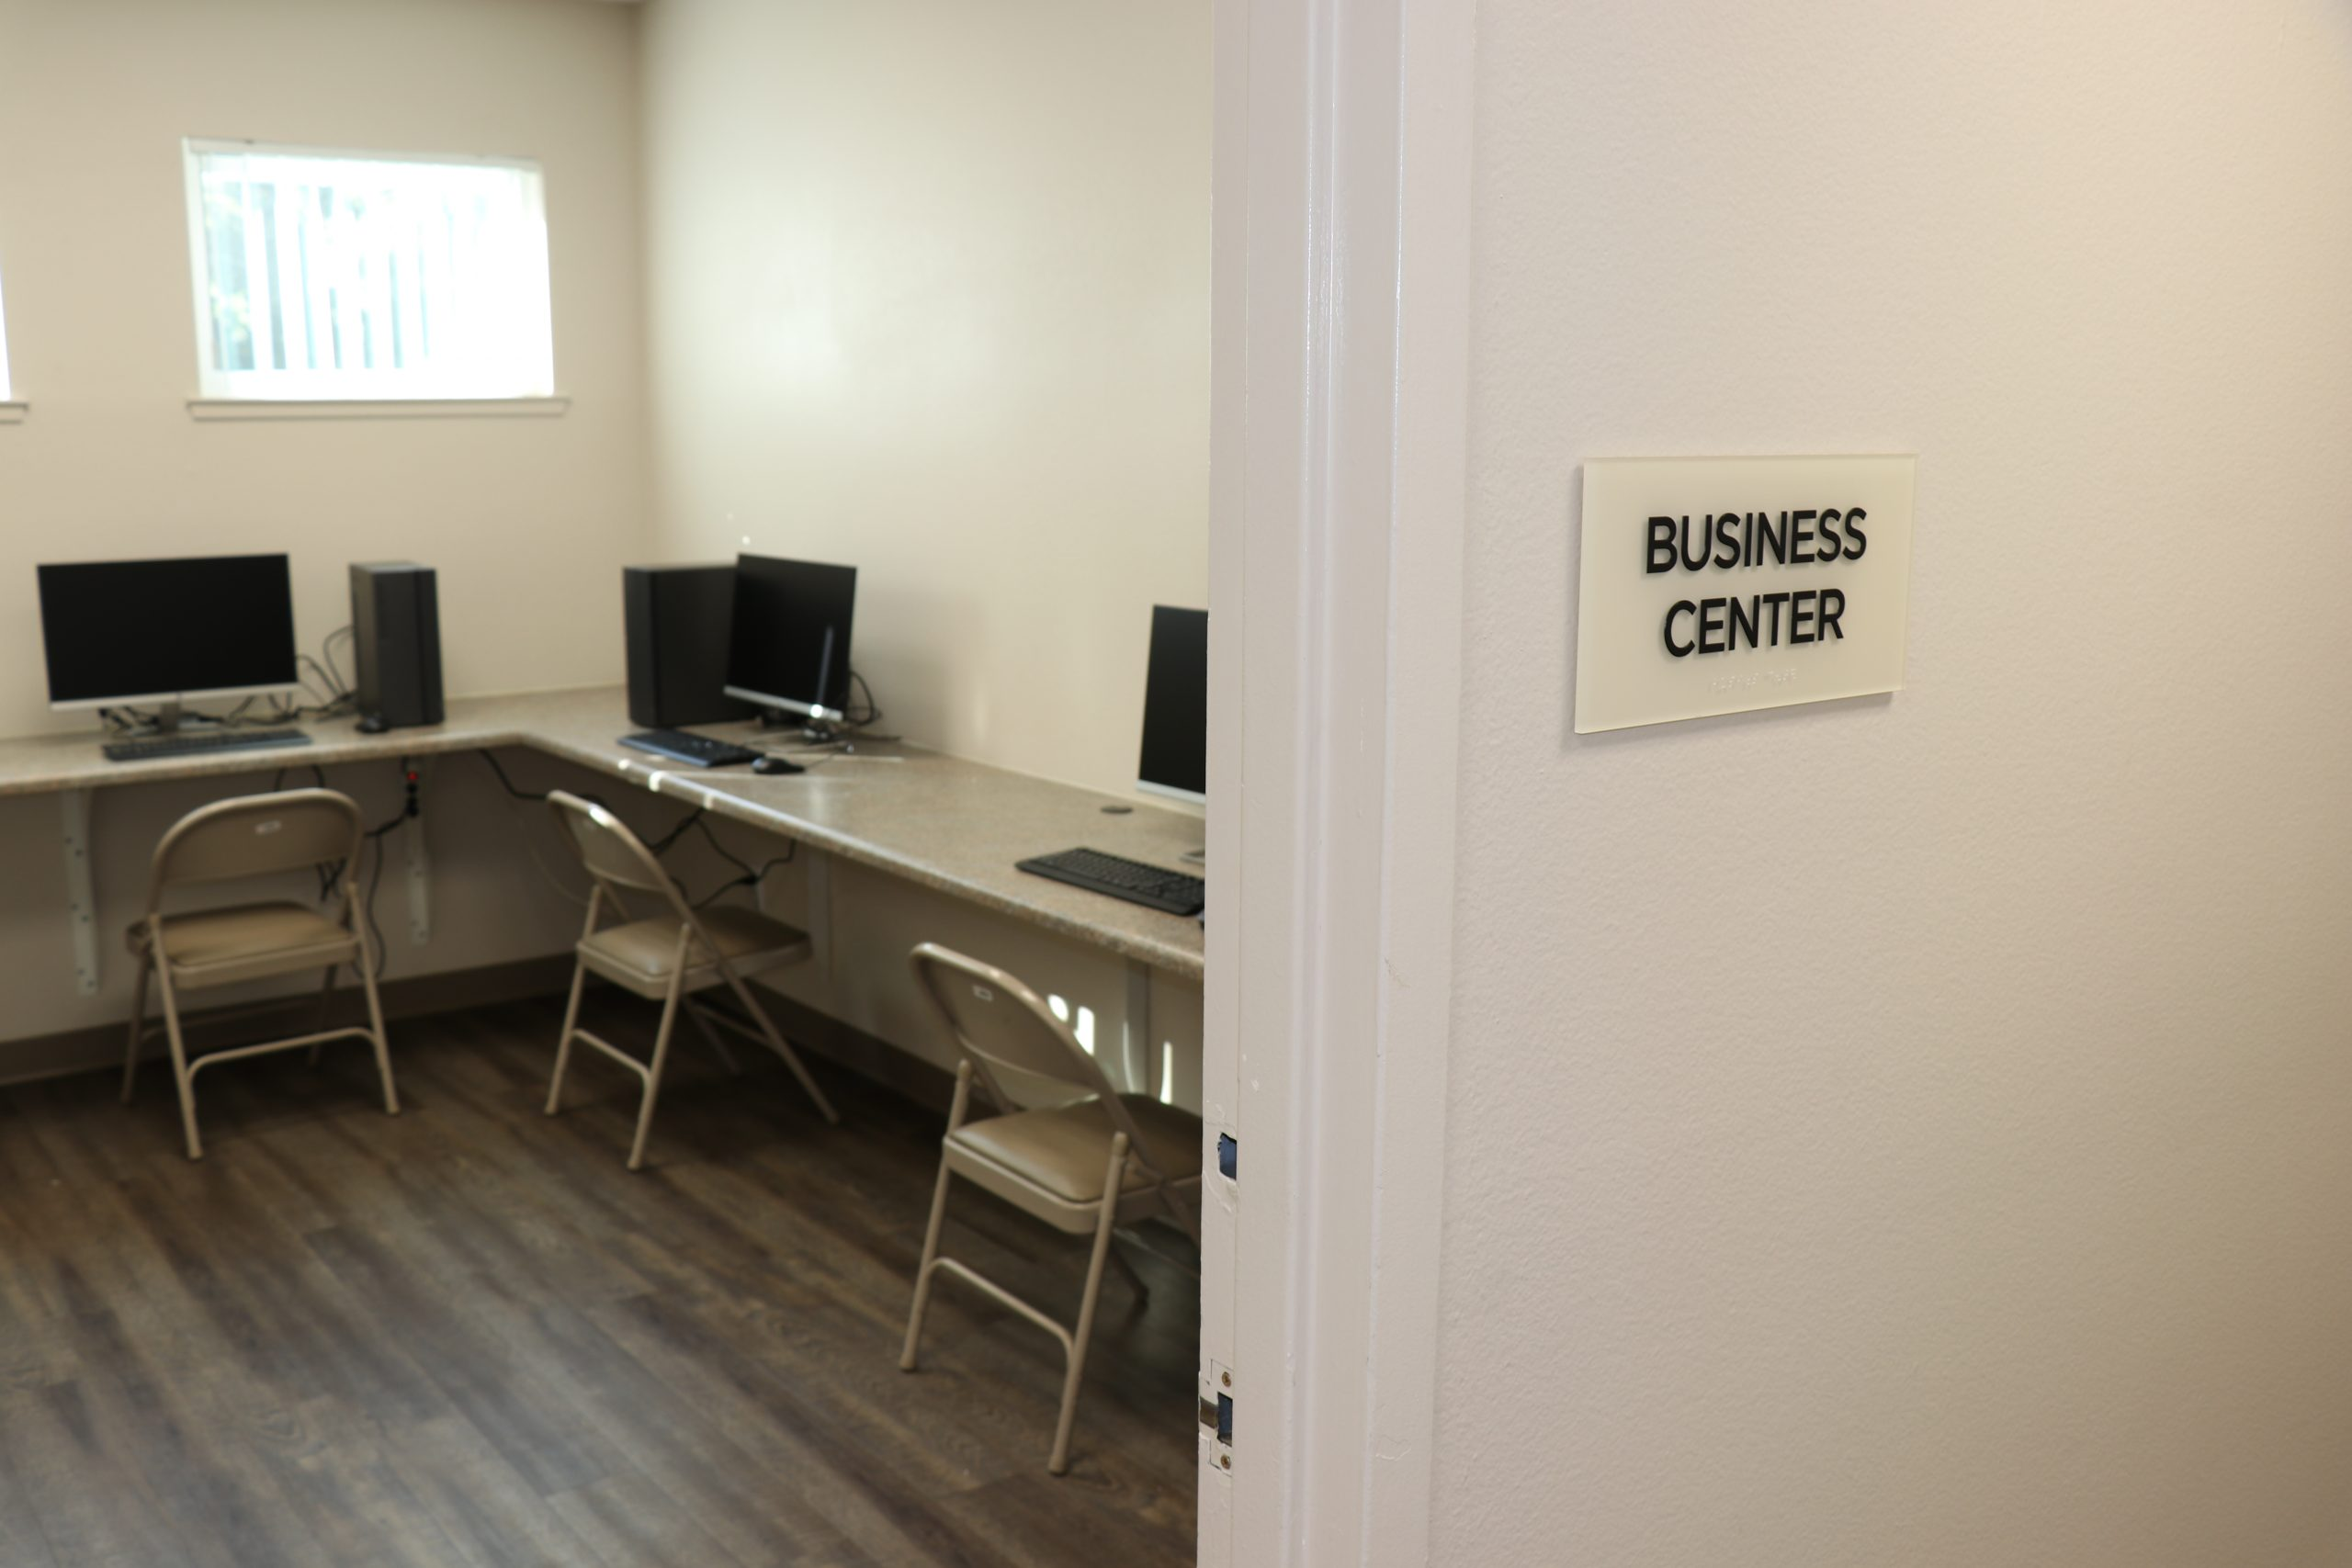 The remodeled Community Building features a Business Center. All residents of Watts Arms are provided with access to free Wi-Fi service.